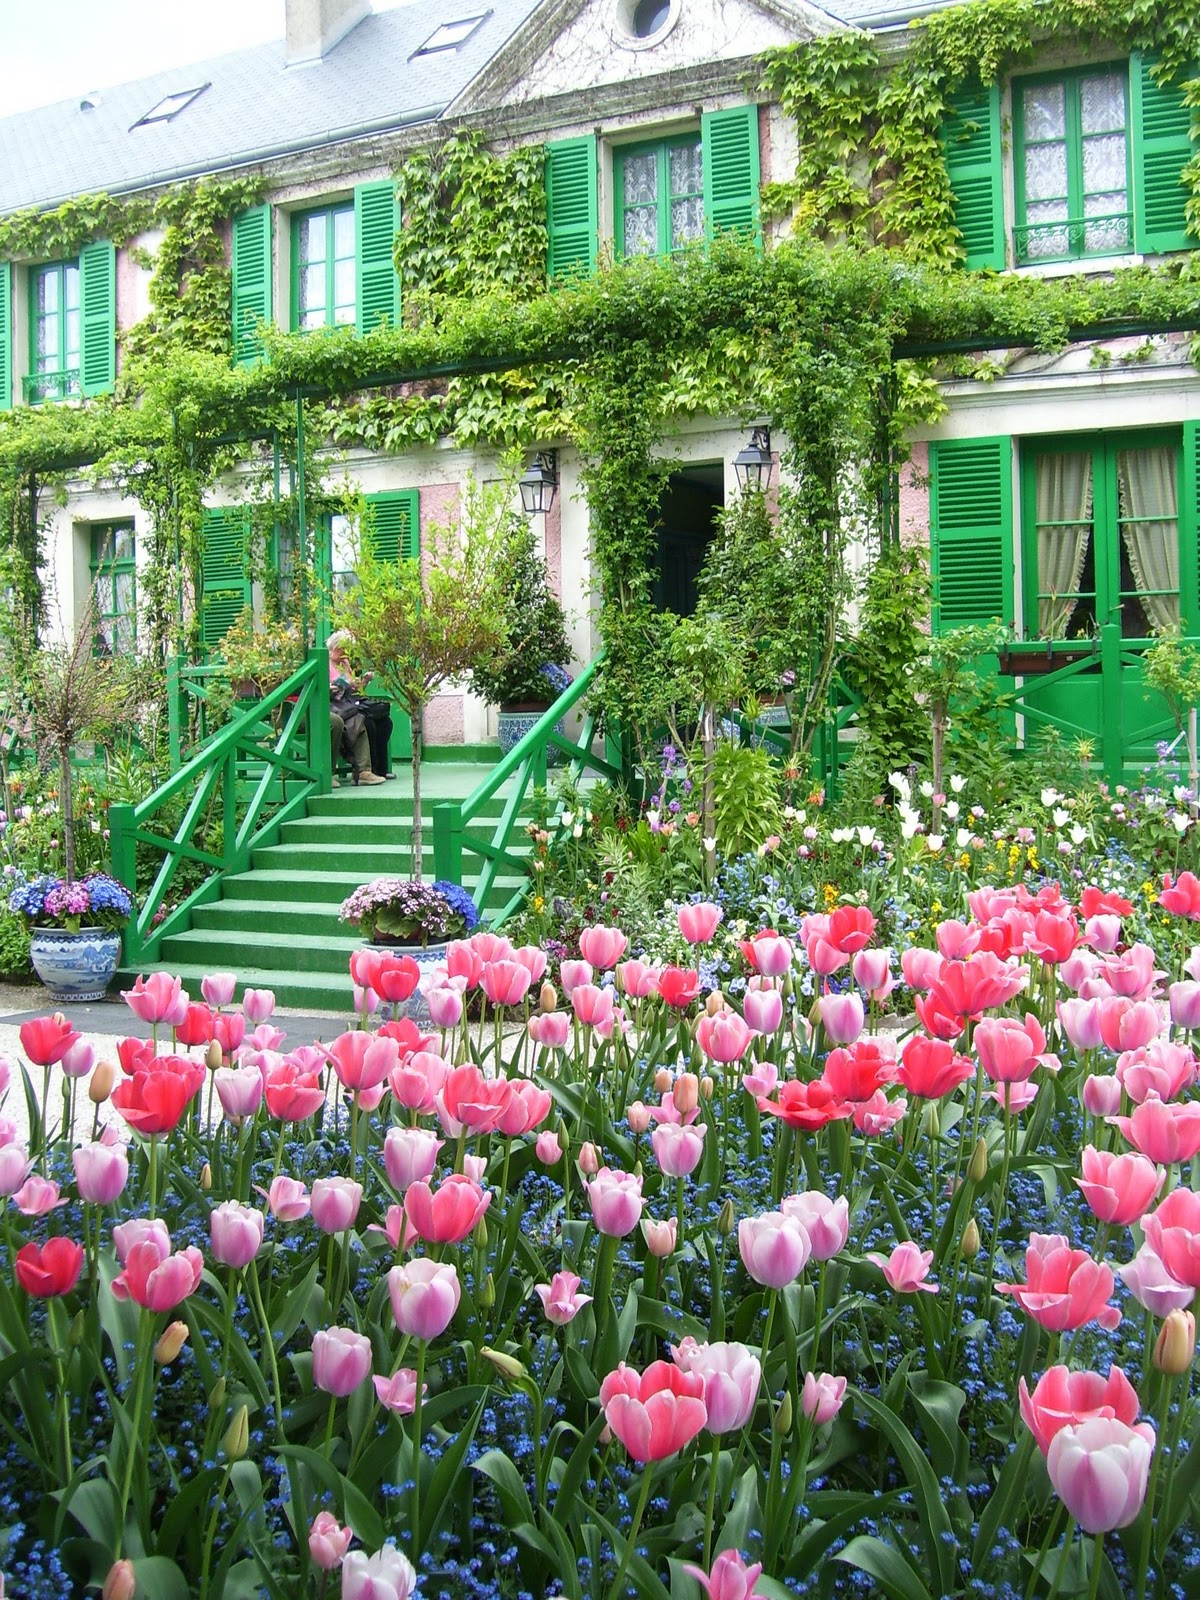 Monet S Garden Our Tour Of Giverny: Phoebettmh Travel: (France)